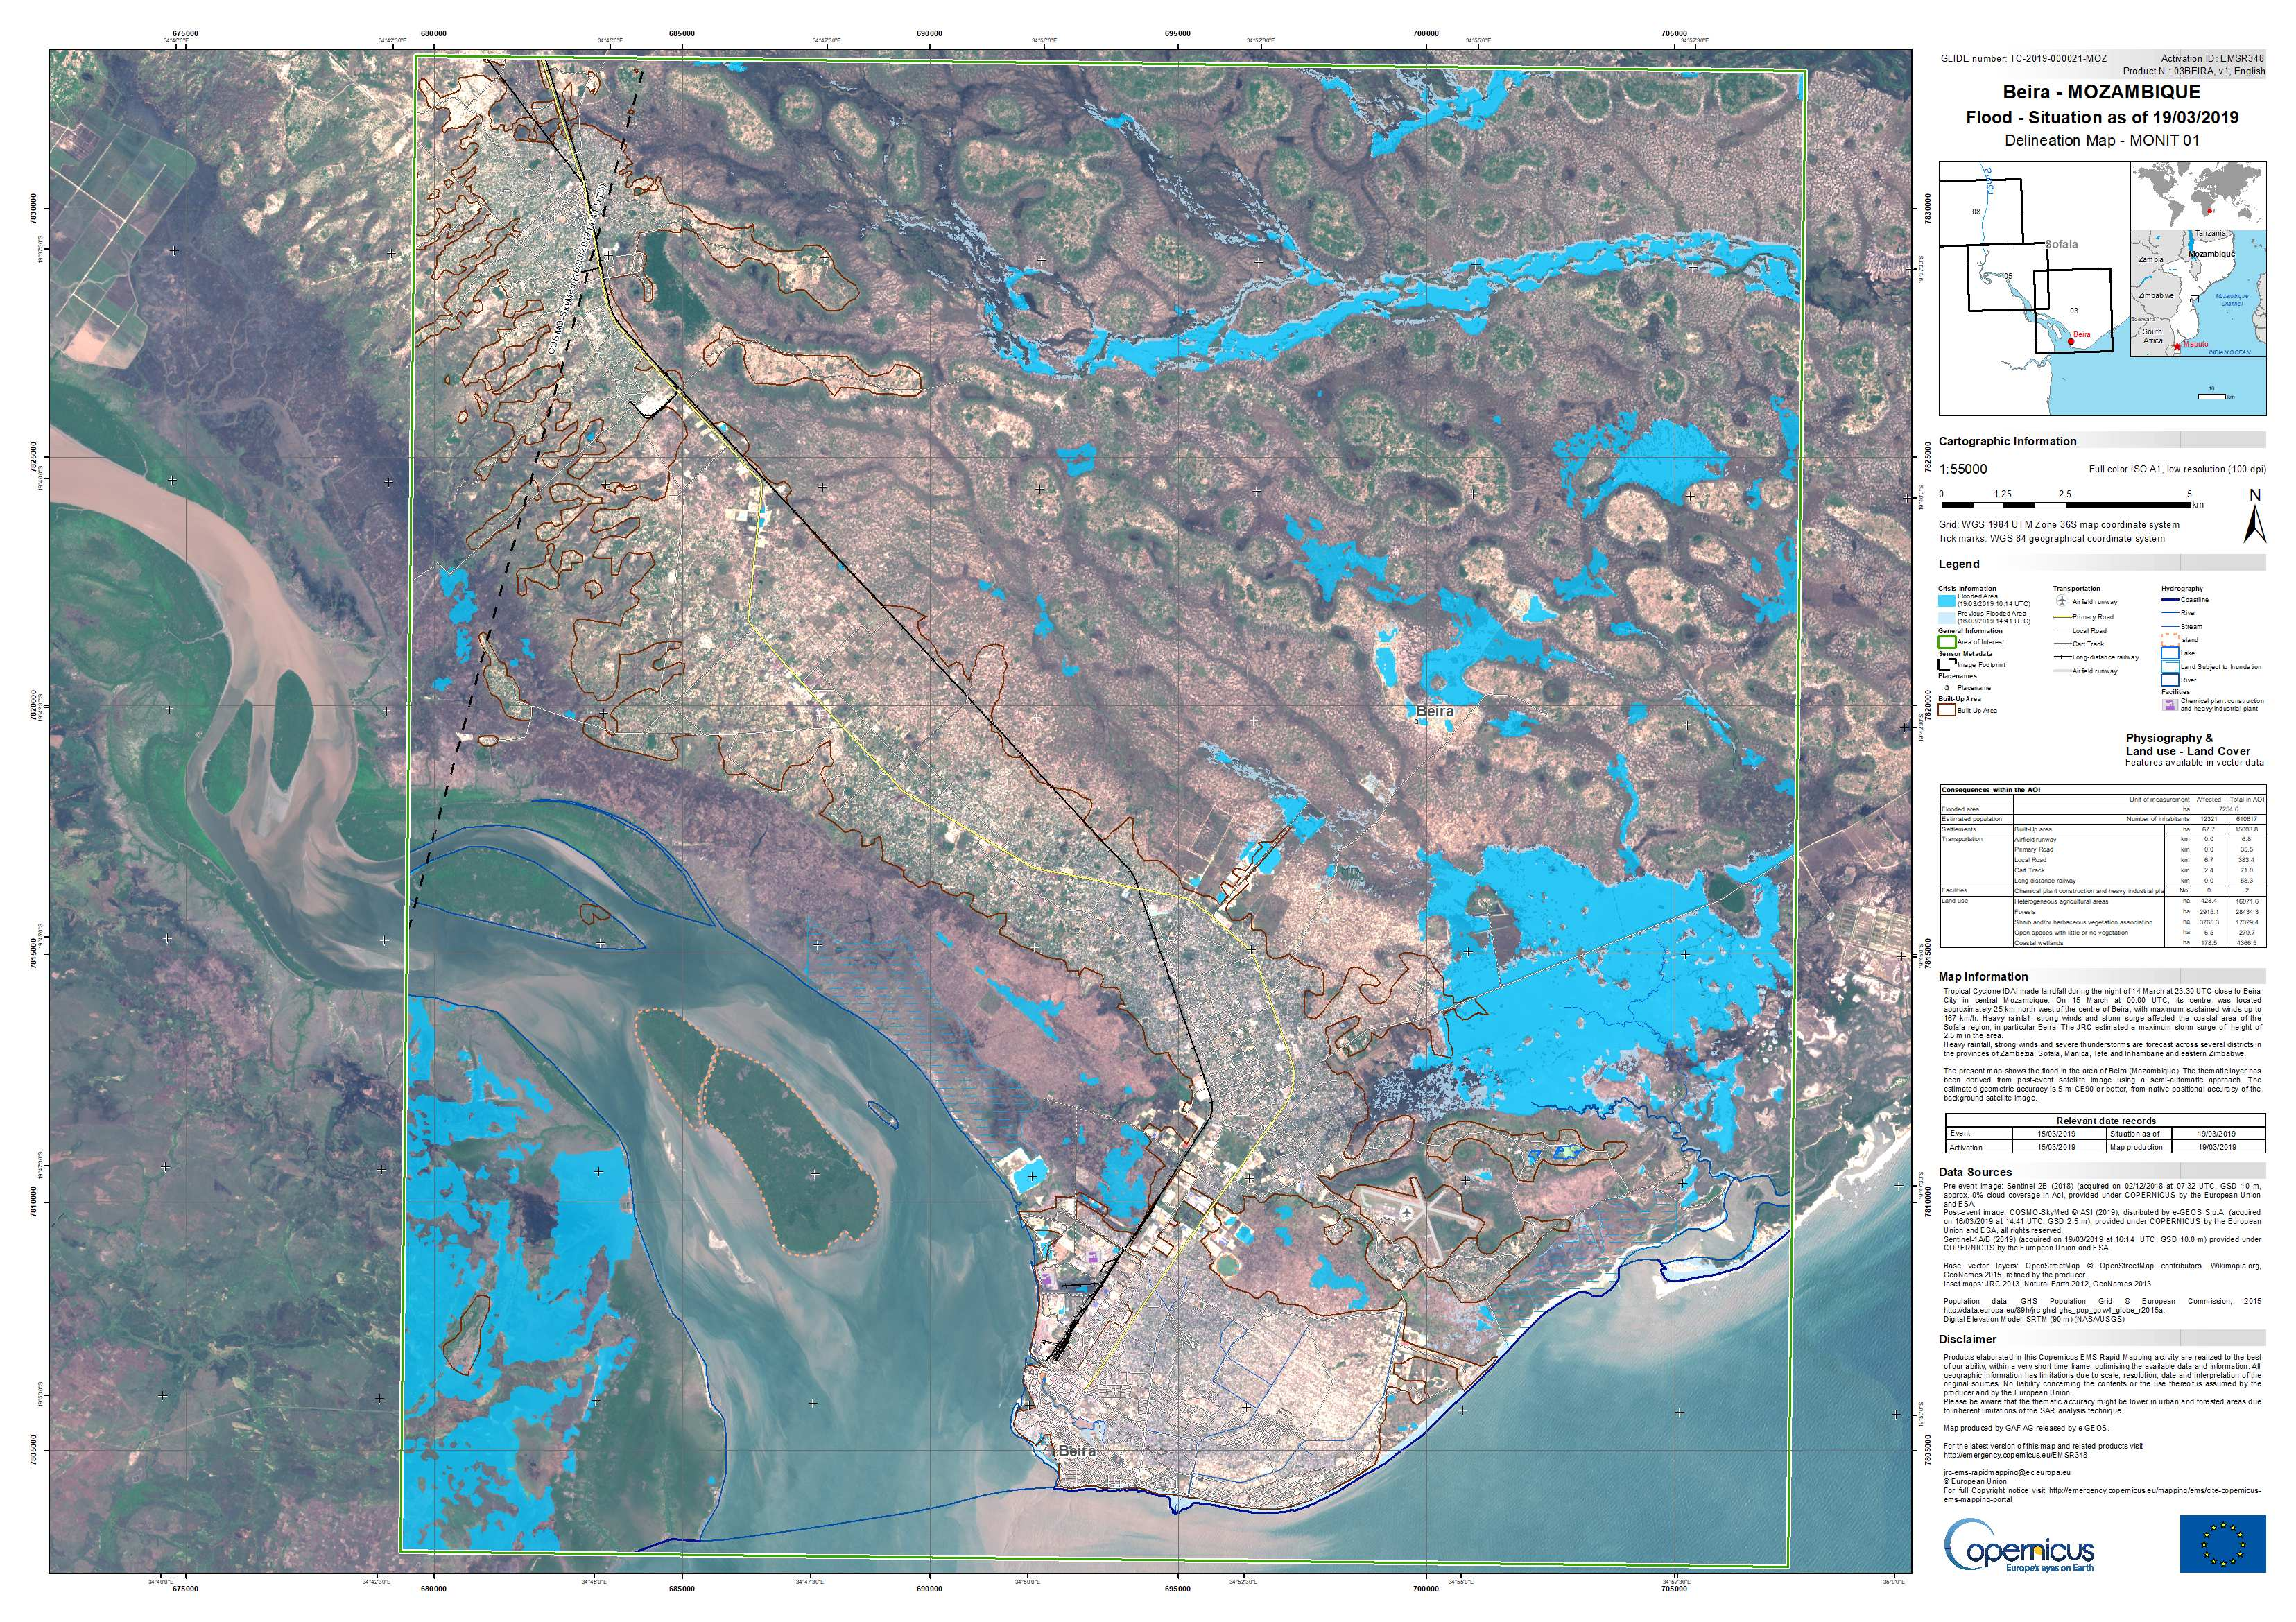 Fig. 3: Copernicus Sentinel-1 maps floods from Idai.